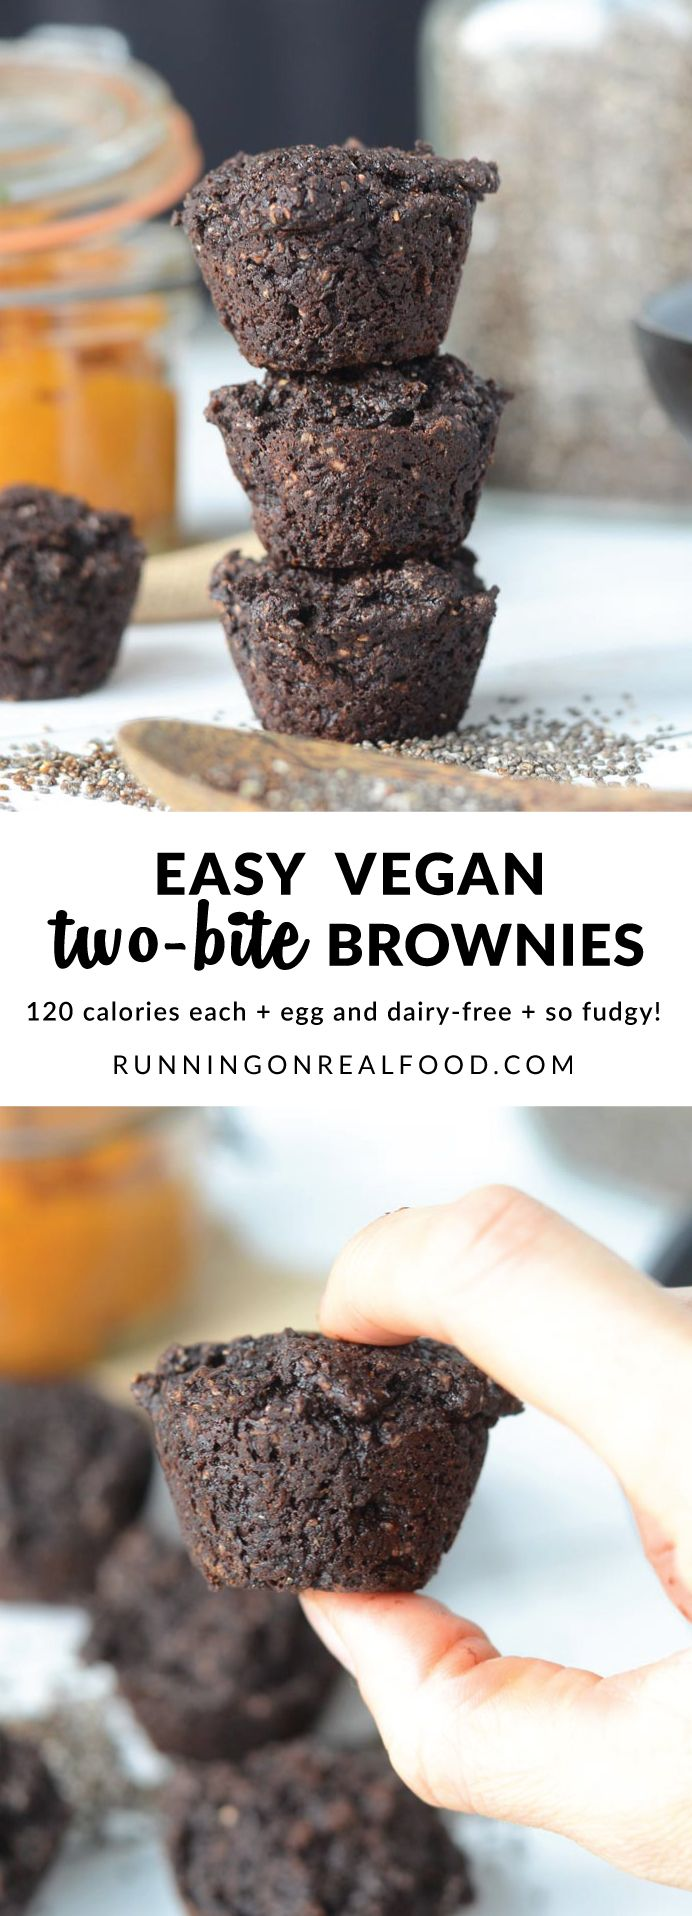 These 120 calorie vegan two bite brownies are made with pumpkin and chia seeds. They're rich and fudgy, decadent and chocolate-packed. Easy to prep in just a few minutes. Amazing straight from the fridge! So fudgy and decadent! http://runningonrealfood.com/vegan-two-bite-brownies/